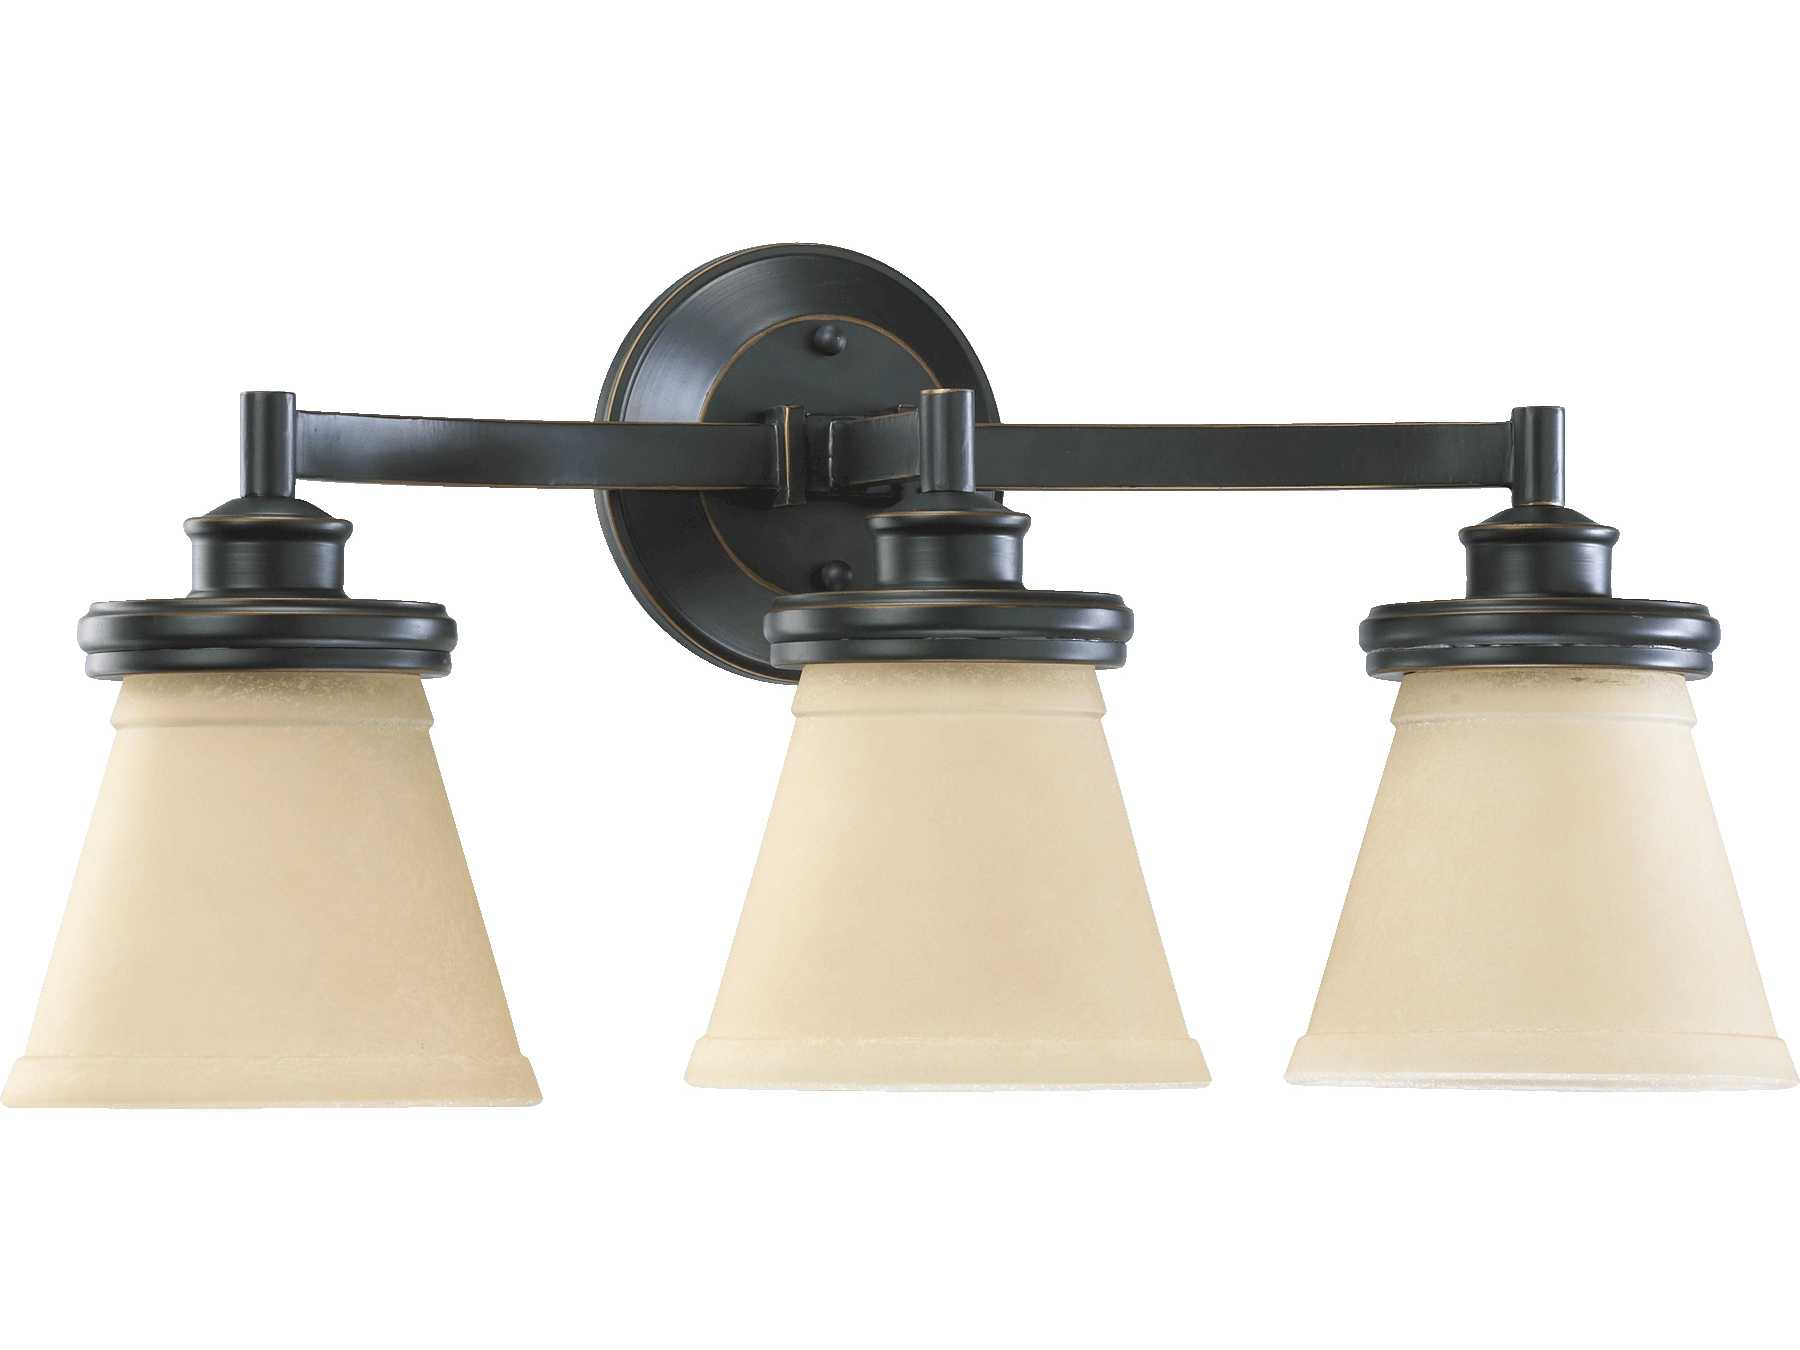 Quorum Vanity Lights : Quorum International Old World Three-Lights Vanity Light 5052-3-95